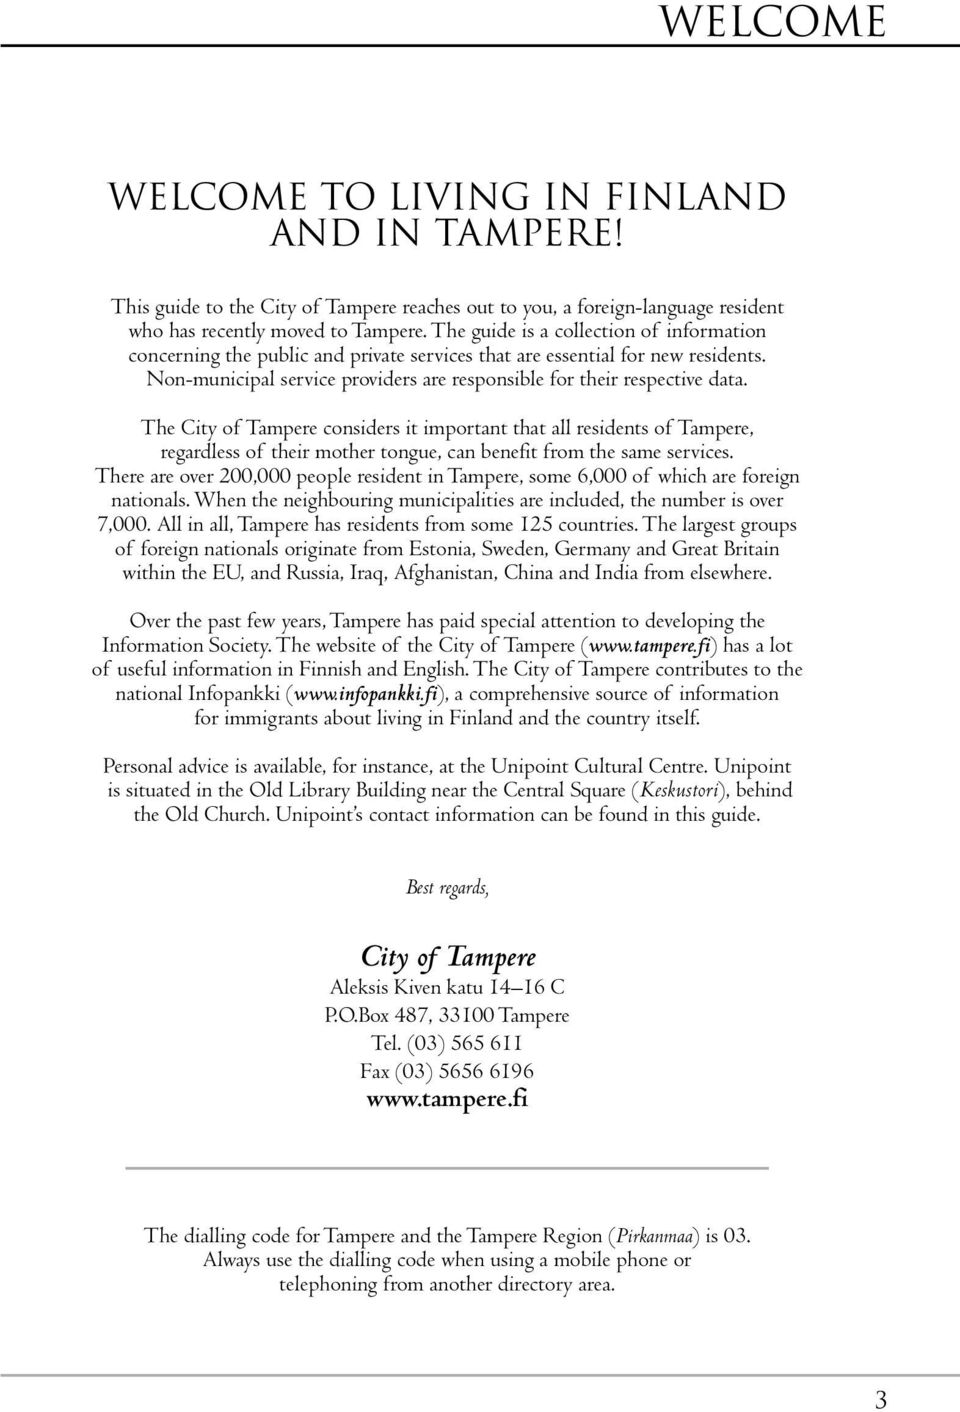 The City of Tampere considers it important that all residents of Tampere, regardless of their mother tongue, can benefit from the same services.